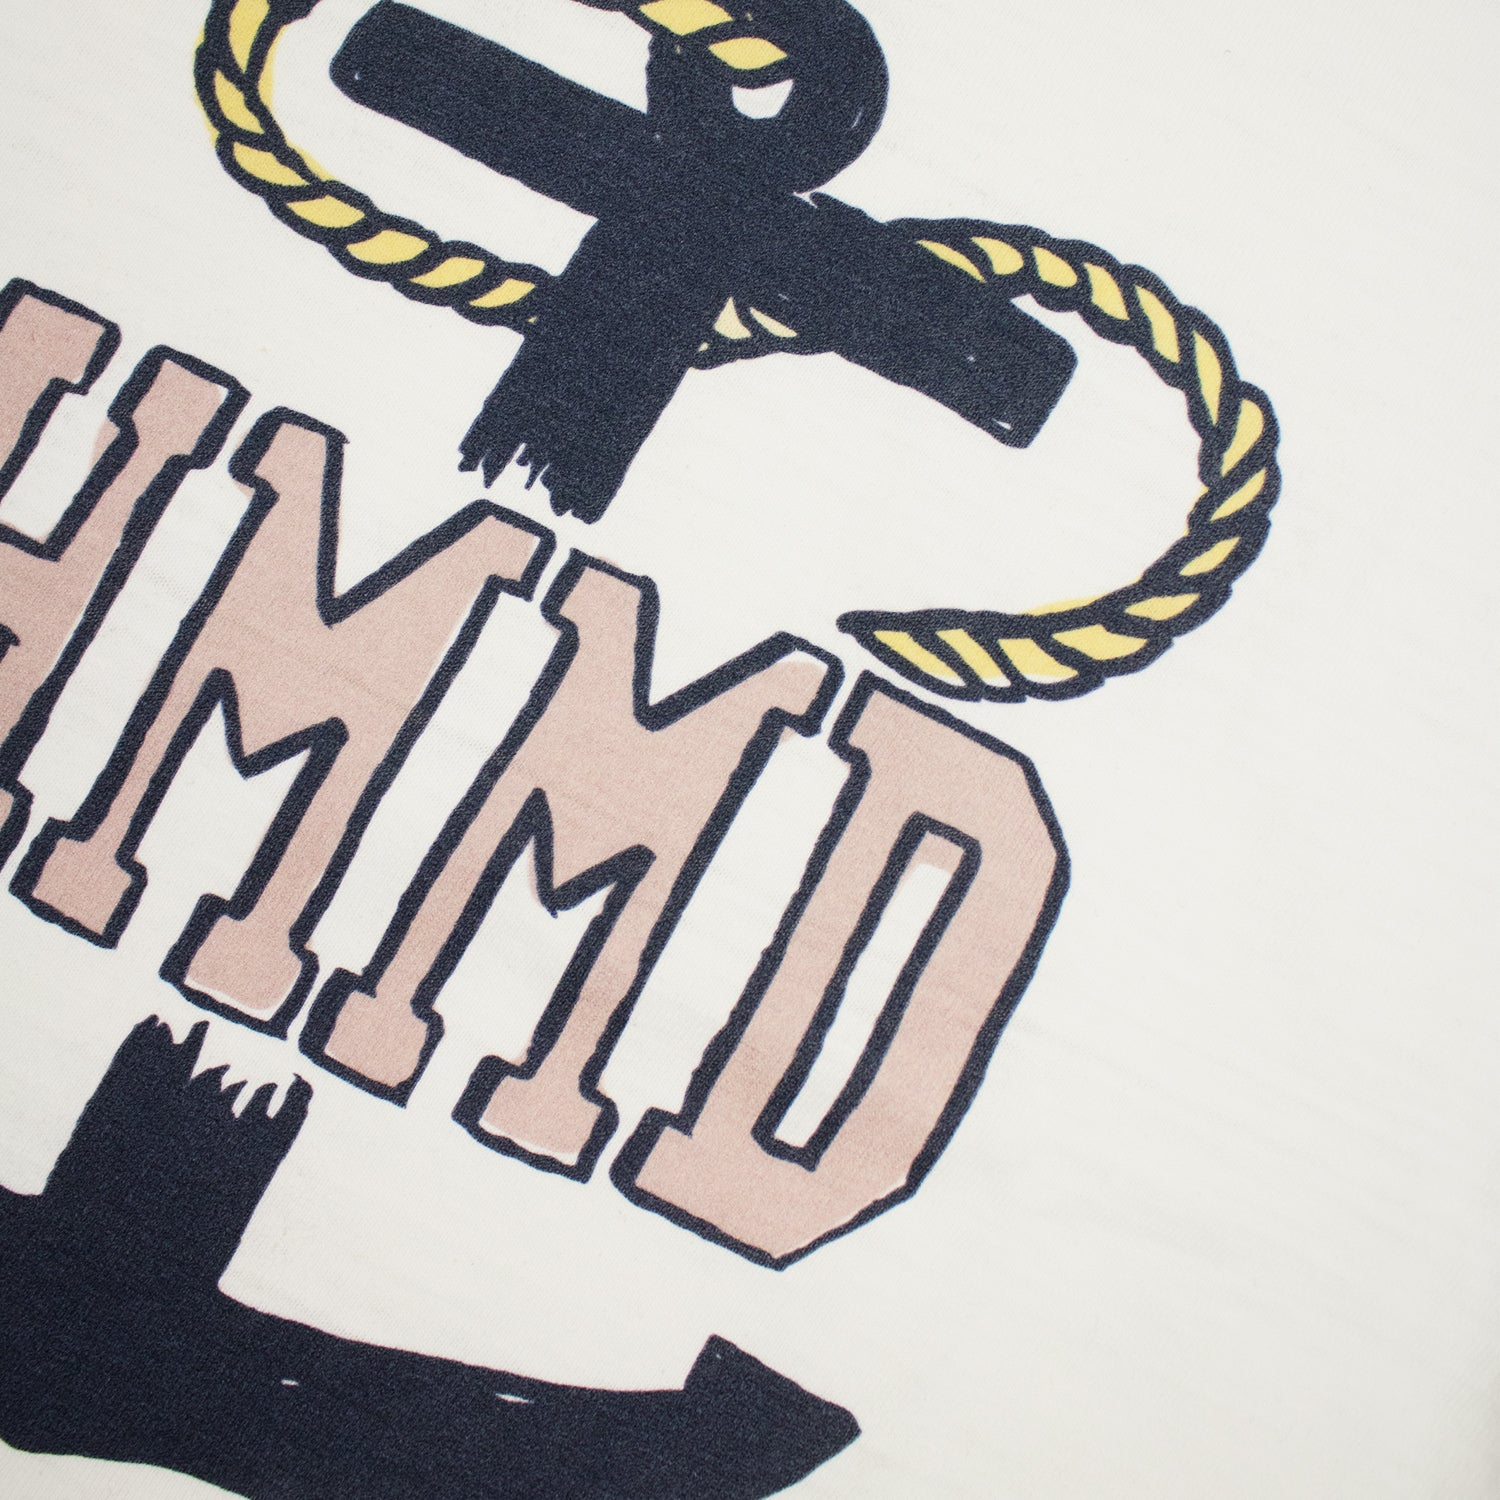 HMMD ANCHOR T-SHIRT